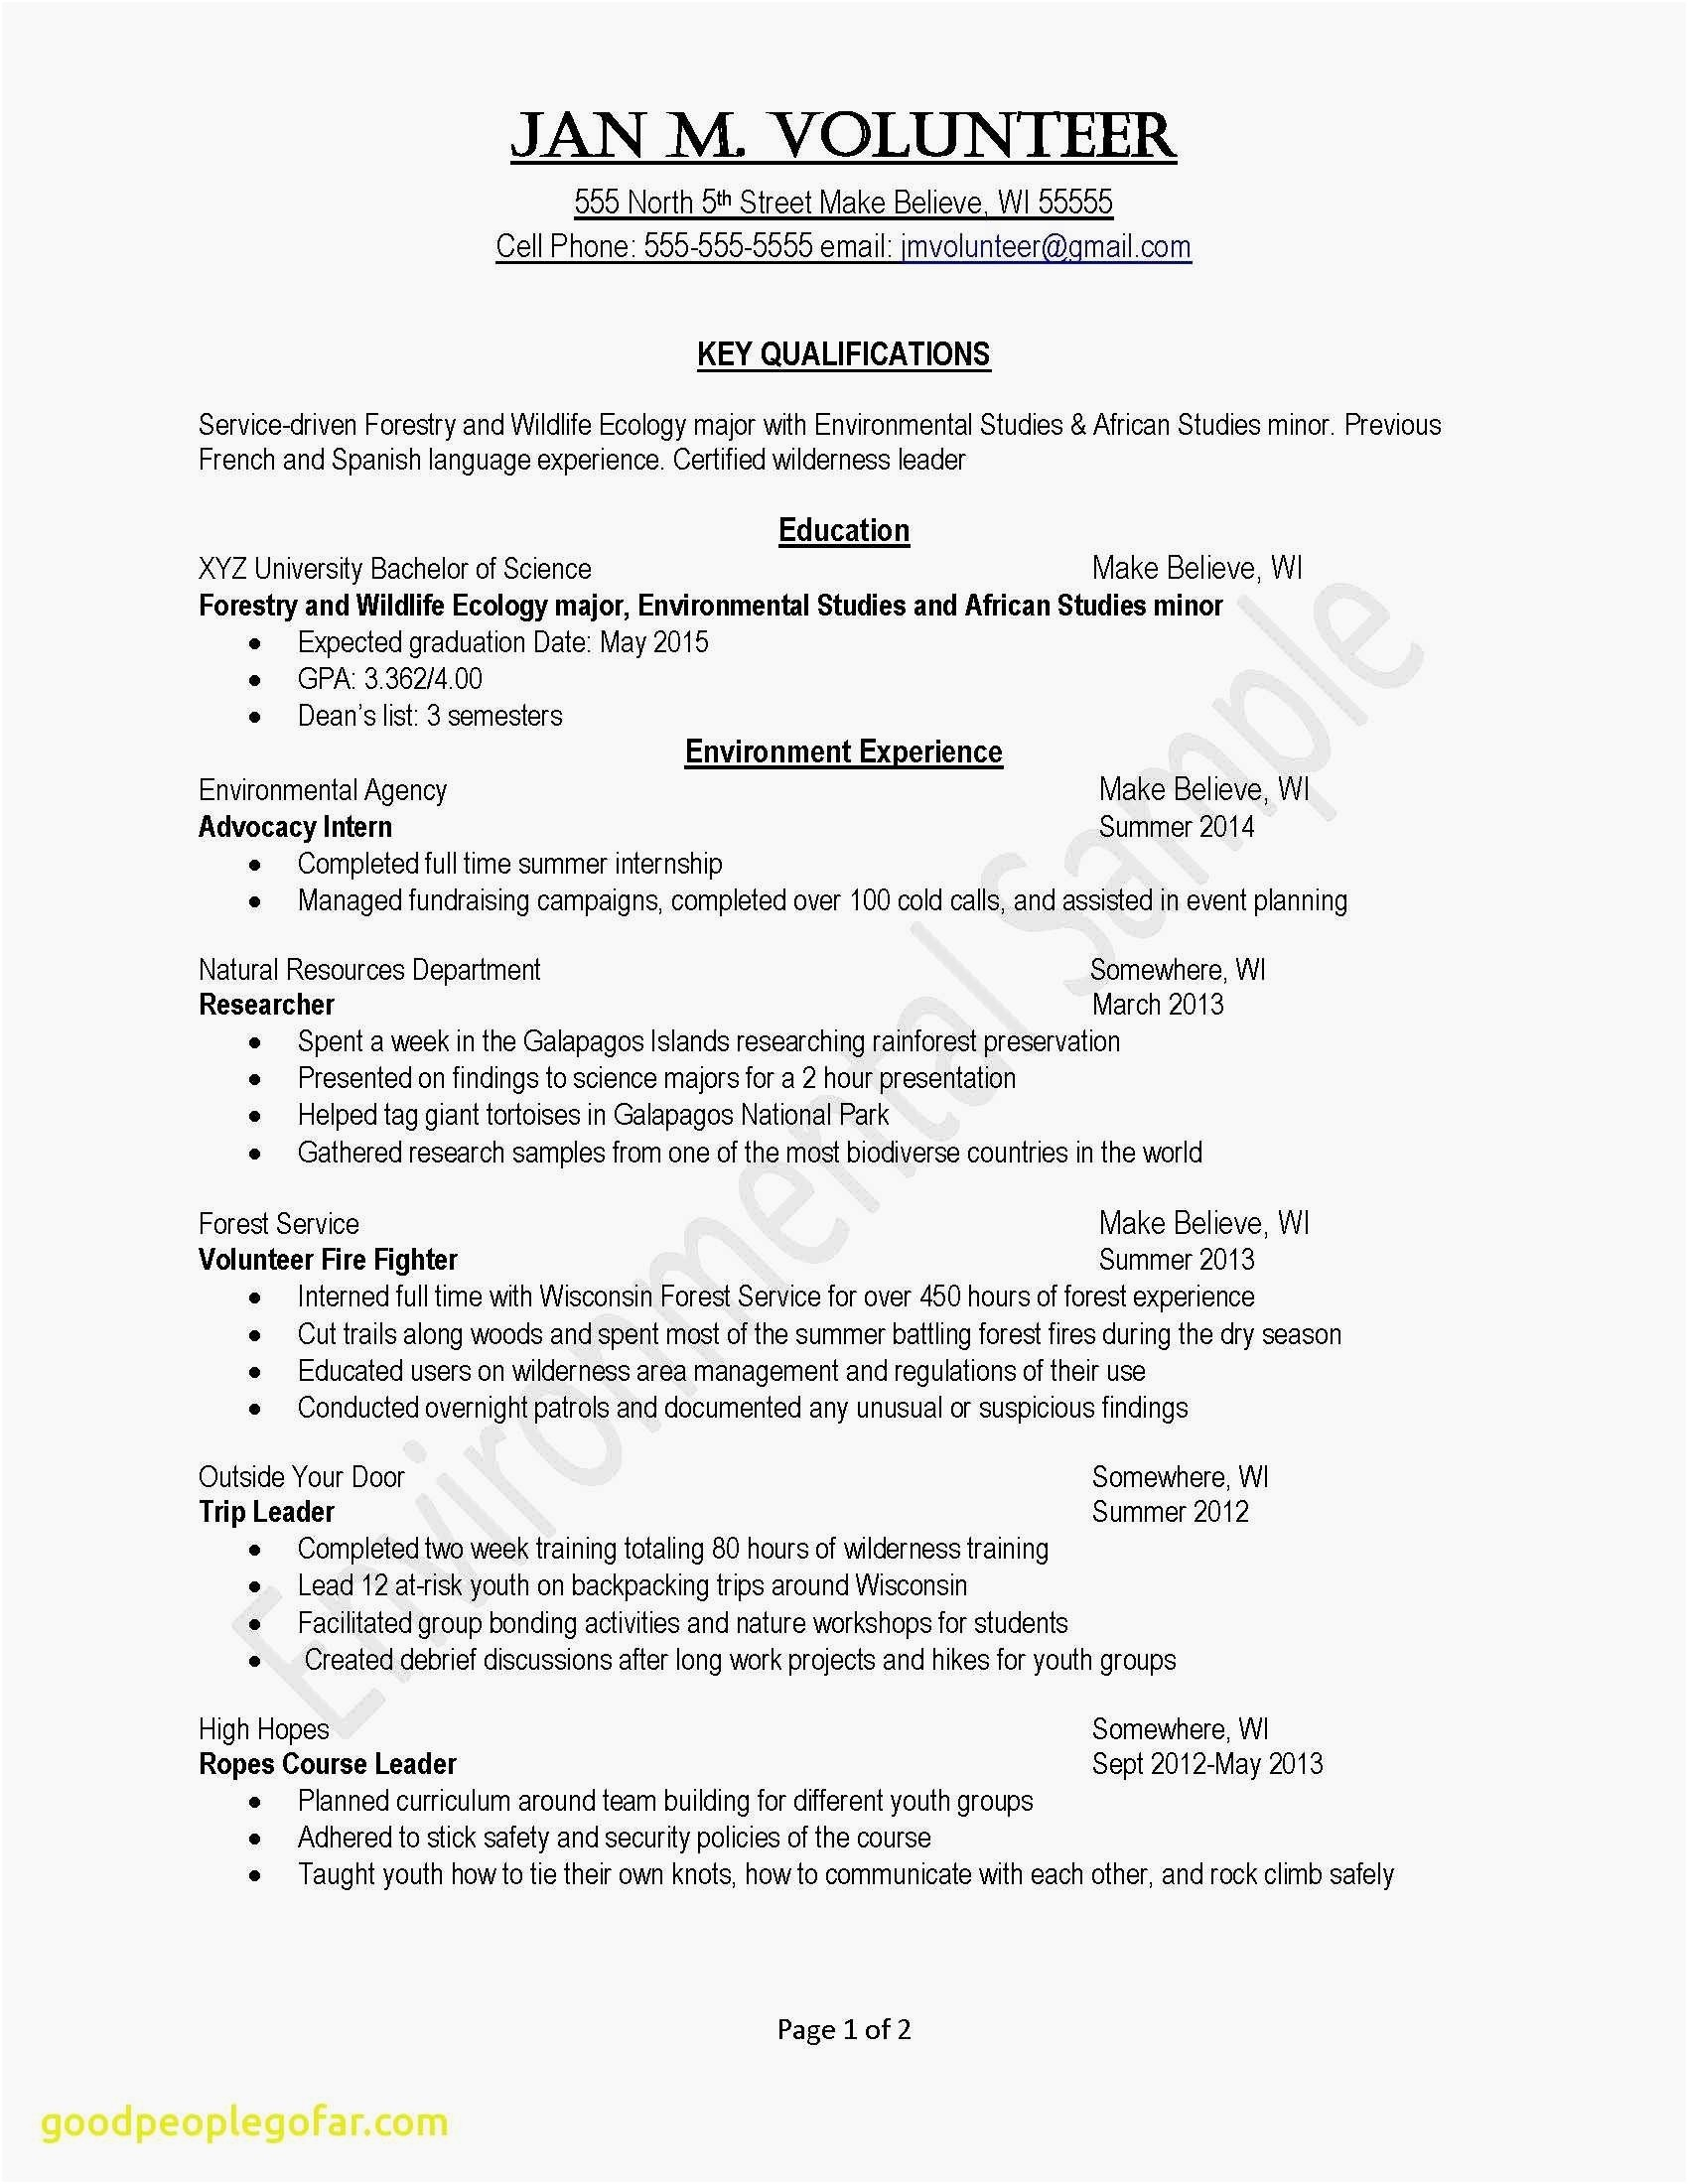 Resume Template for Part Time Job - Executive Resume Template Lovely Fresh Pr Resume Template Elegant